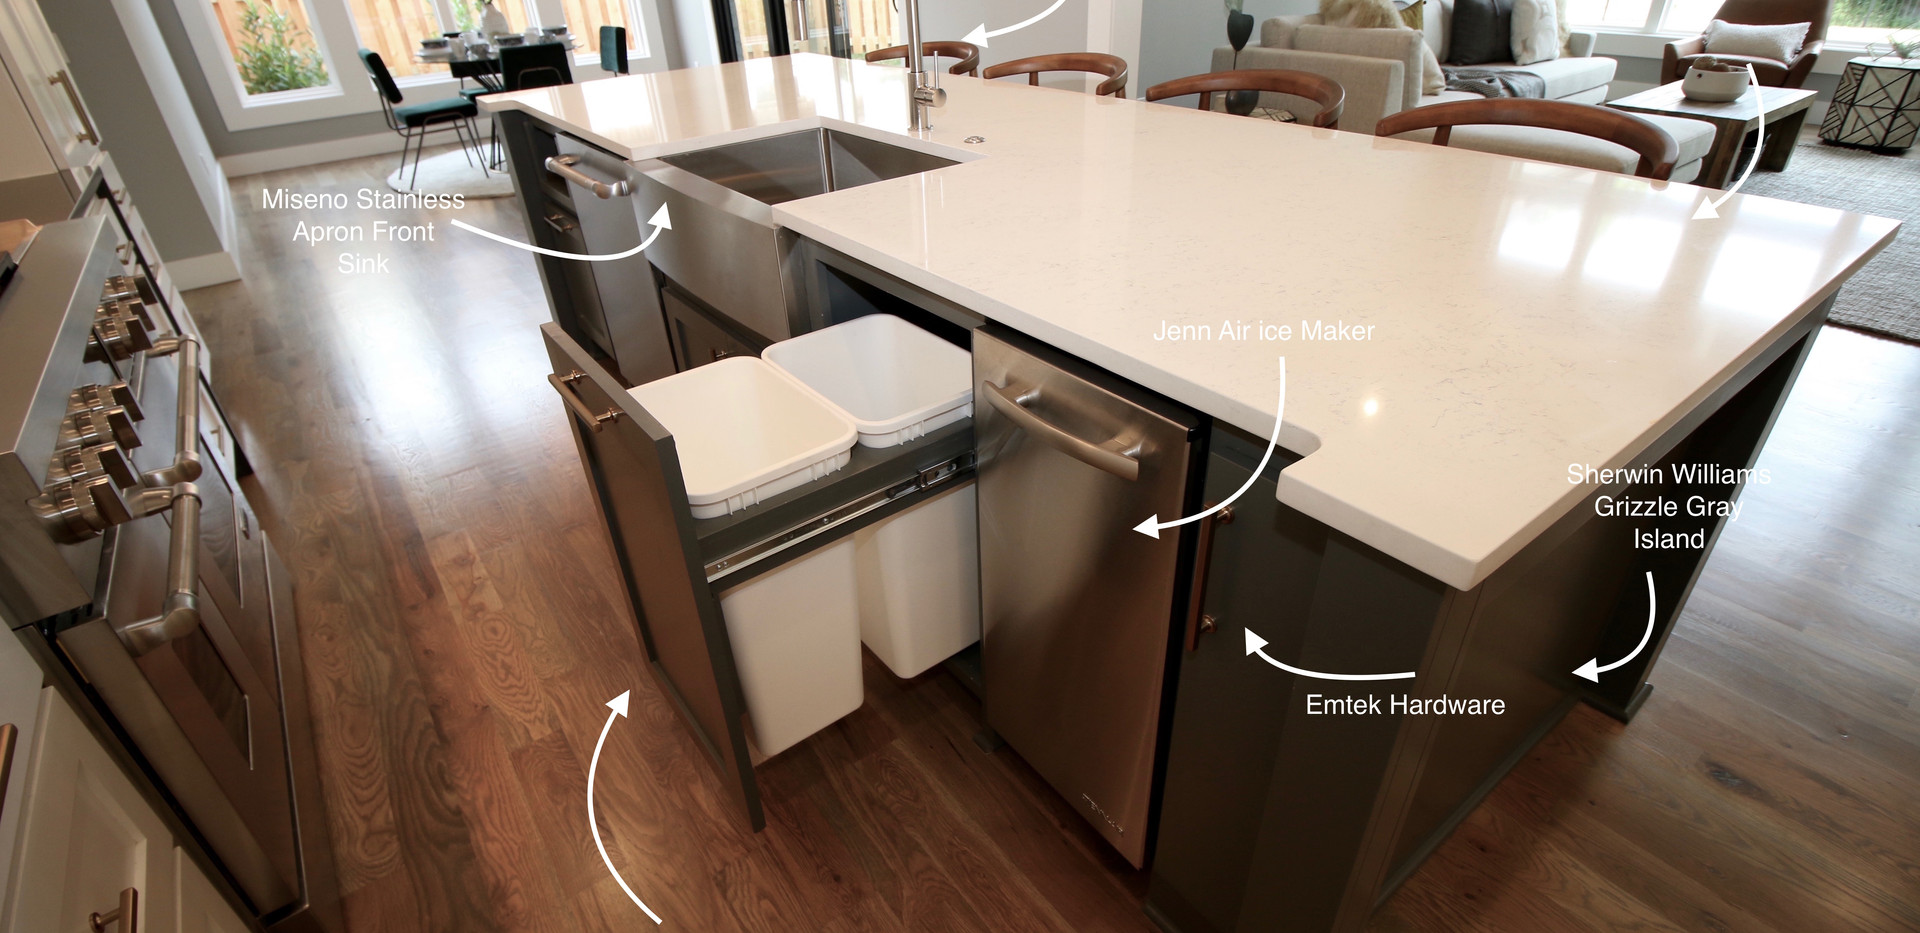 Parade Home Kitchen Features 4.jpg